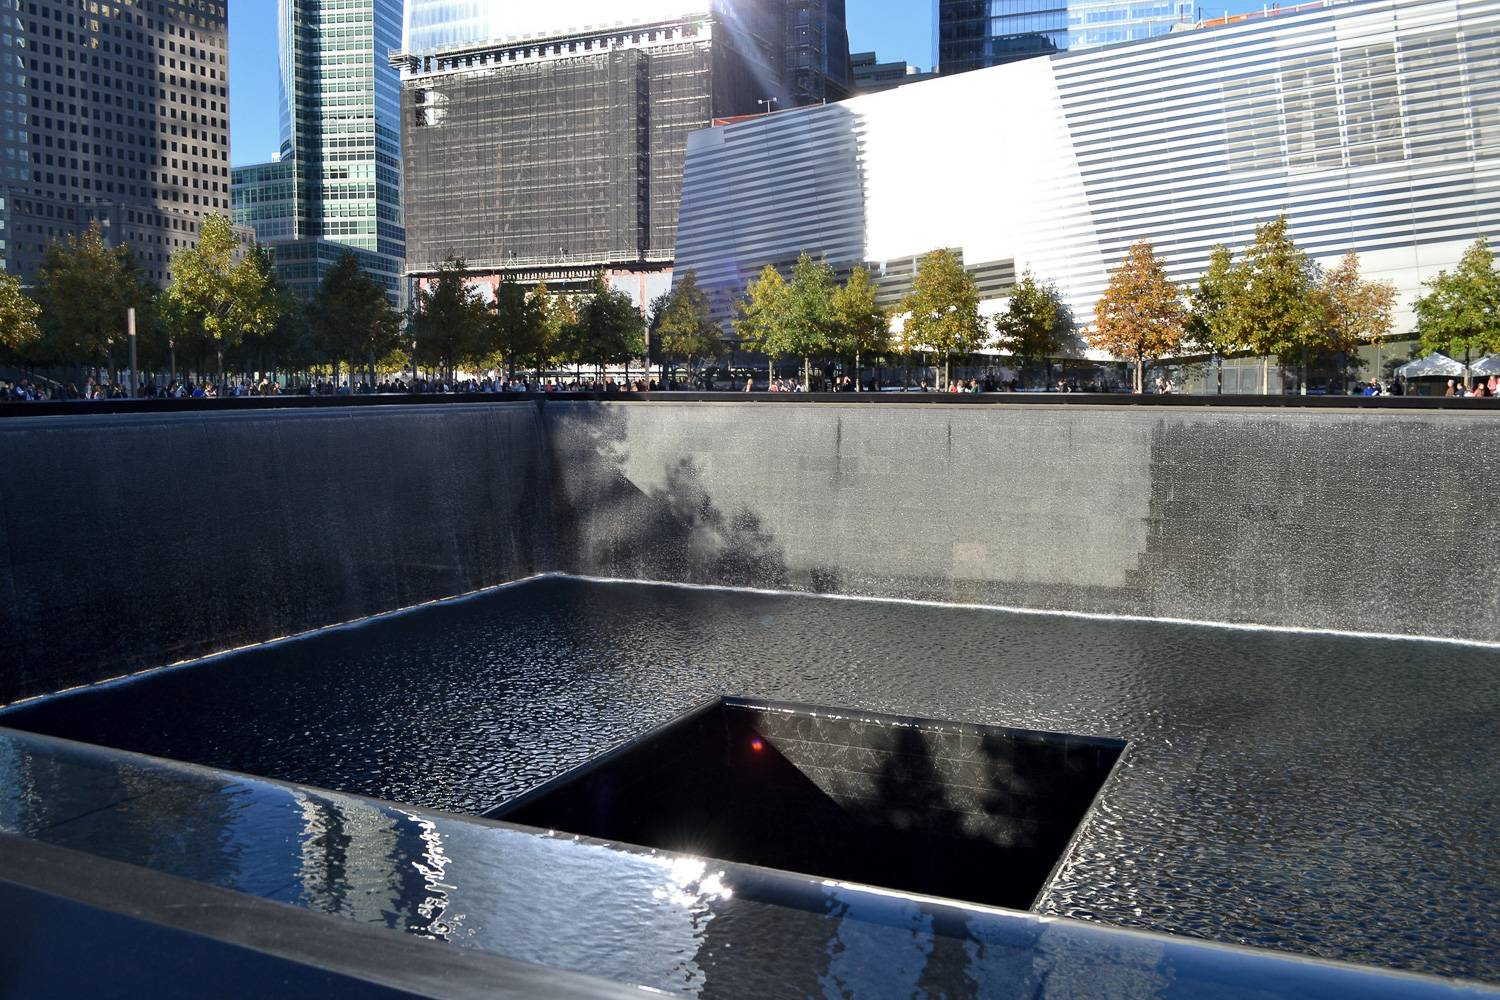 Image of one of the reflecting pools at the National September 11 Memorial.